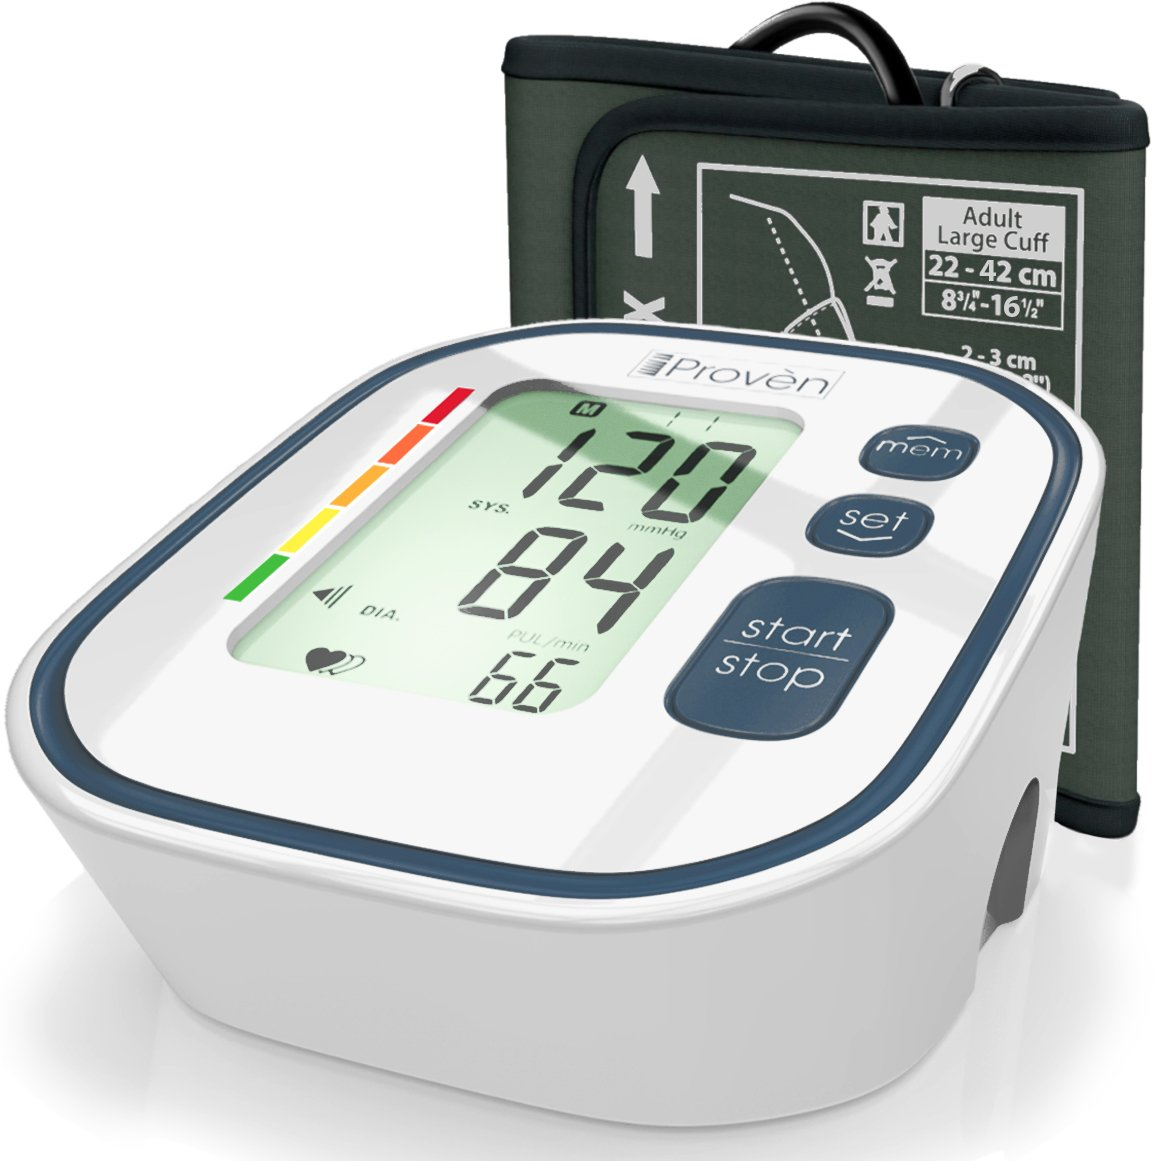 Best, Fast, Accurate Blood Pressure Monitor for Painless Reading BPM-634WG, Large Screen Upper Arm Cuff Easy Home use - Top Rated BP Monitors FDA Approved Digital Electronic Machine Cuffs